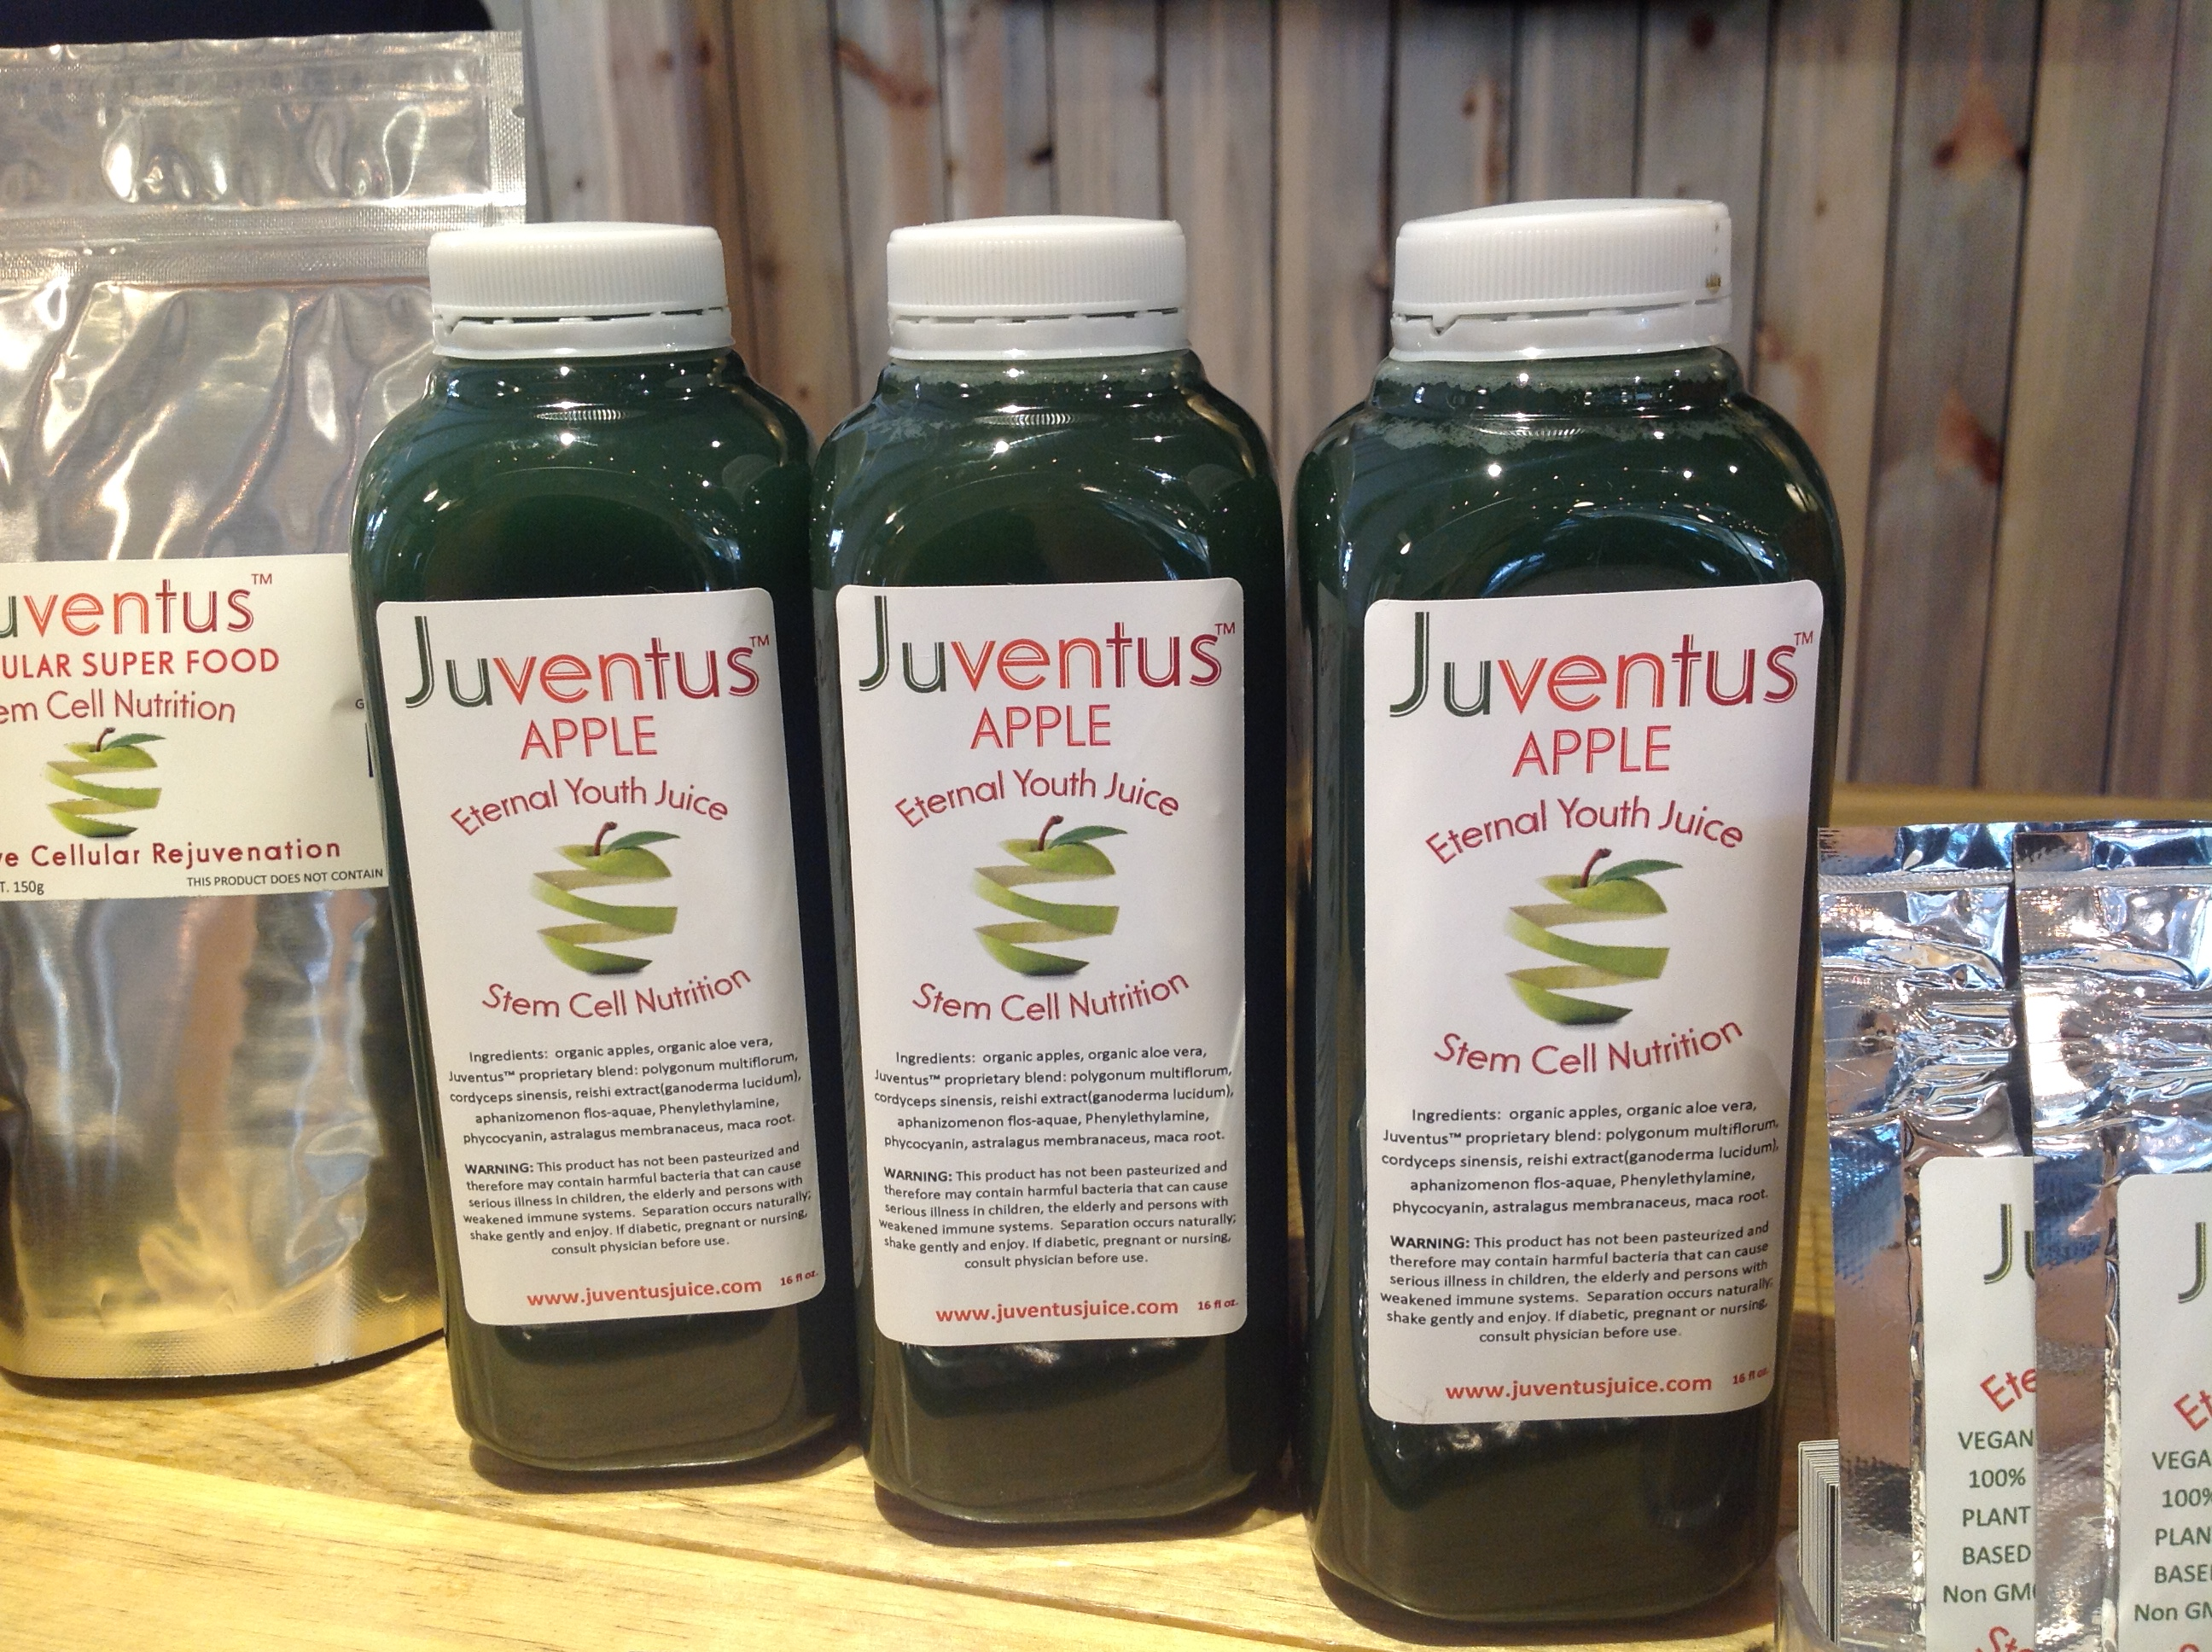 Juventus Juice Stem Cell Nutrition